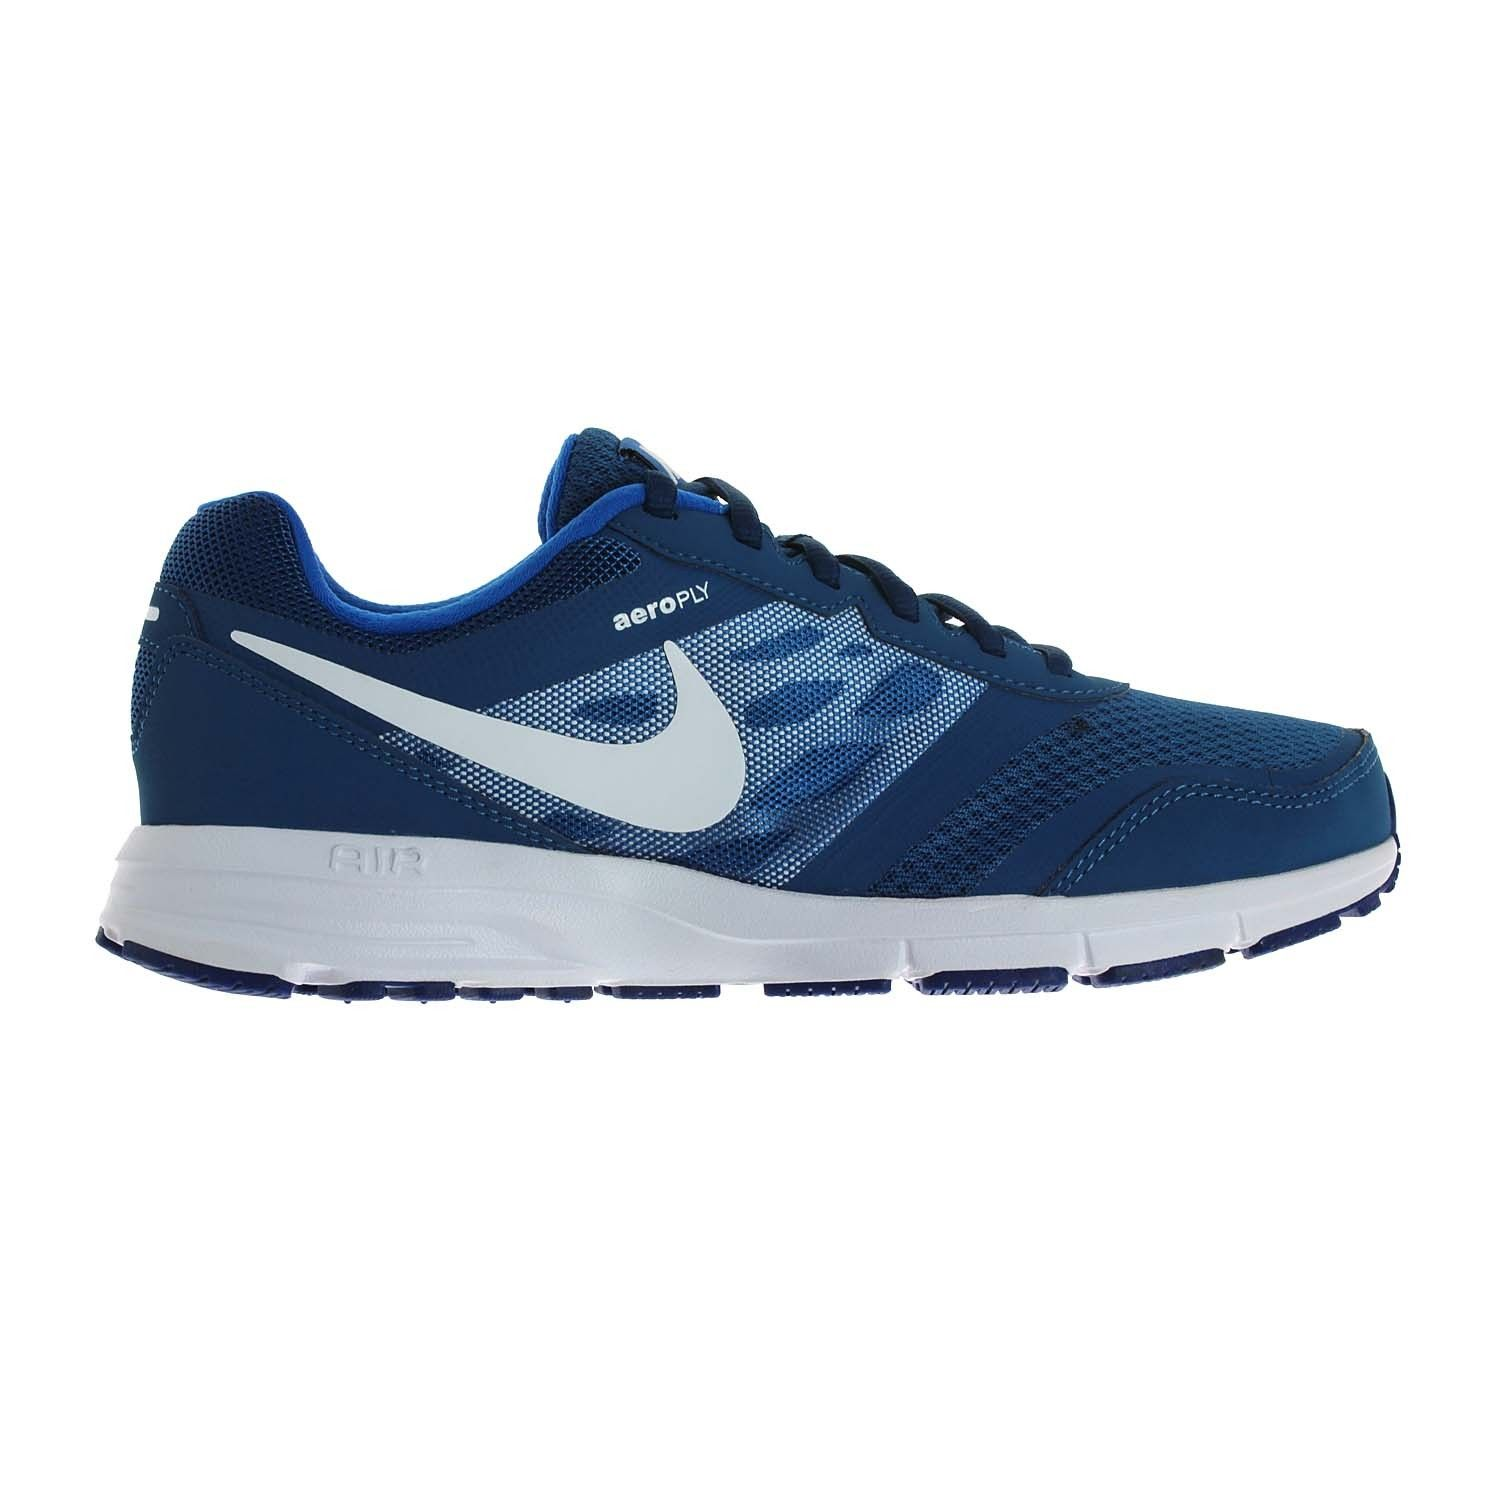 Nike Air Relentless 4 MSL (685139-405) · RelentlessRunning ShoesNike Air